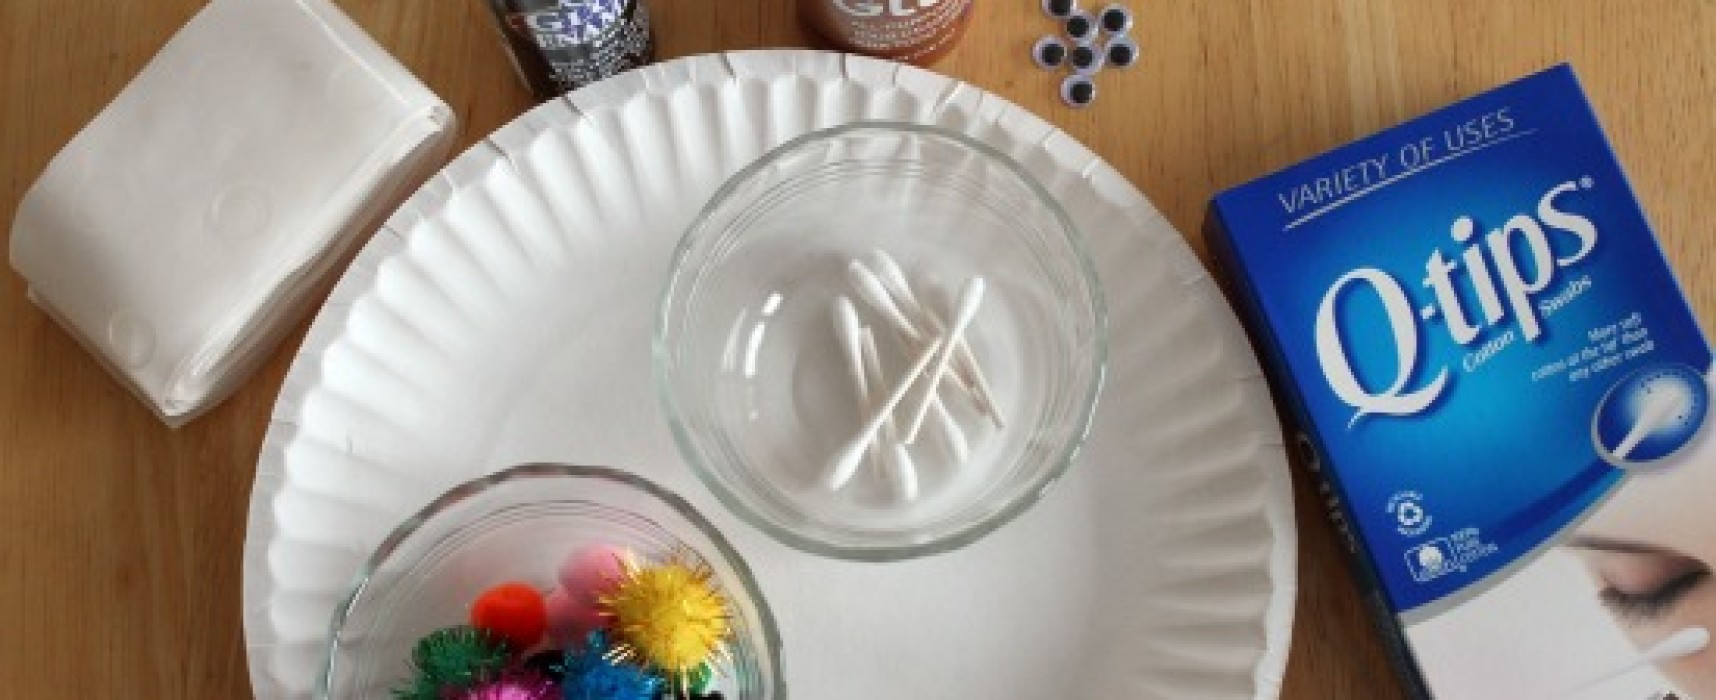 Top 10 Craft Tips: Crafting with the Kids